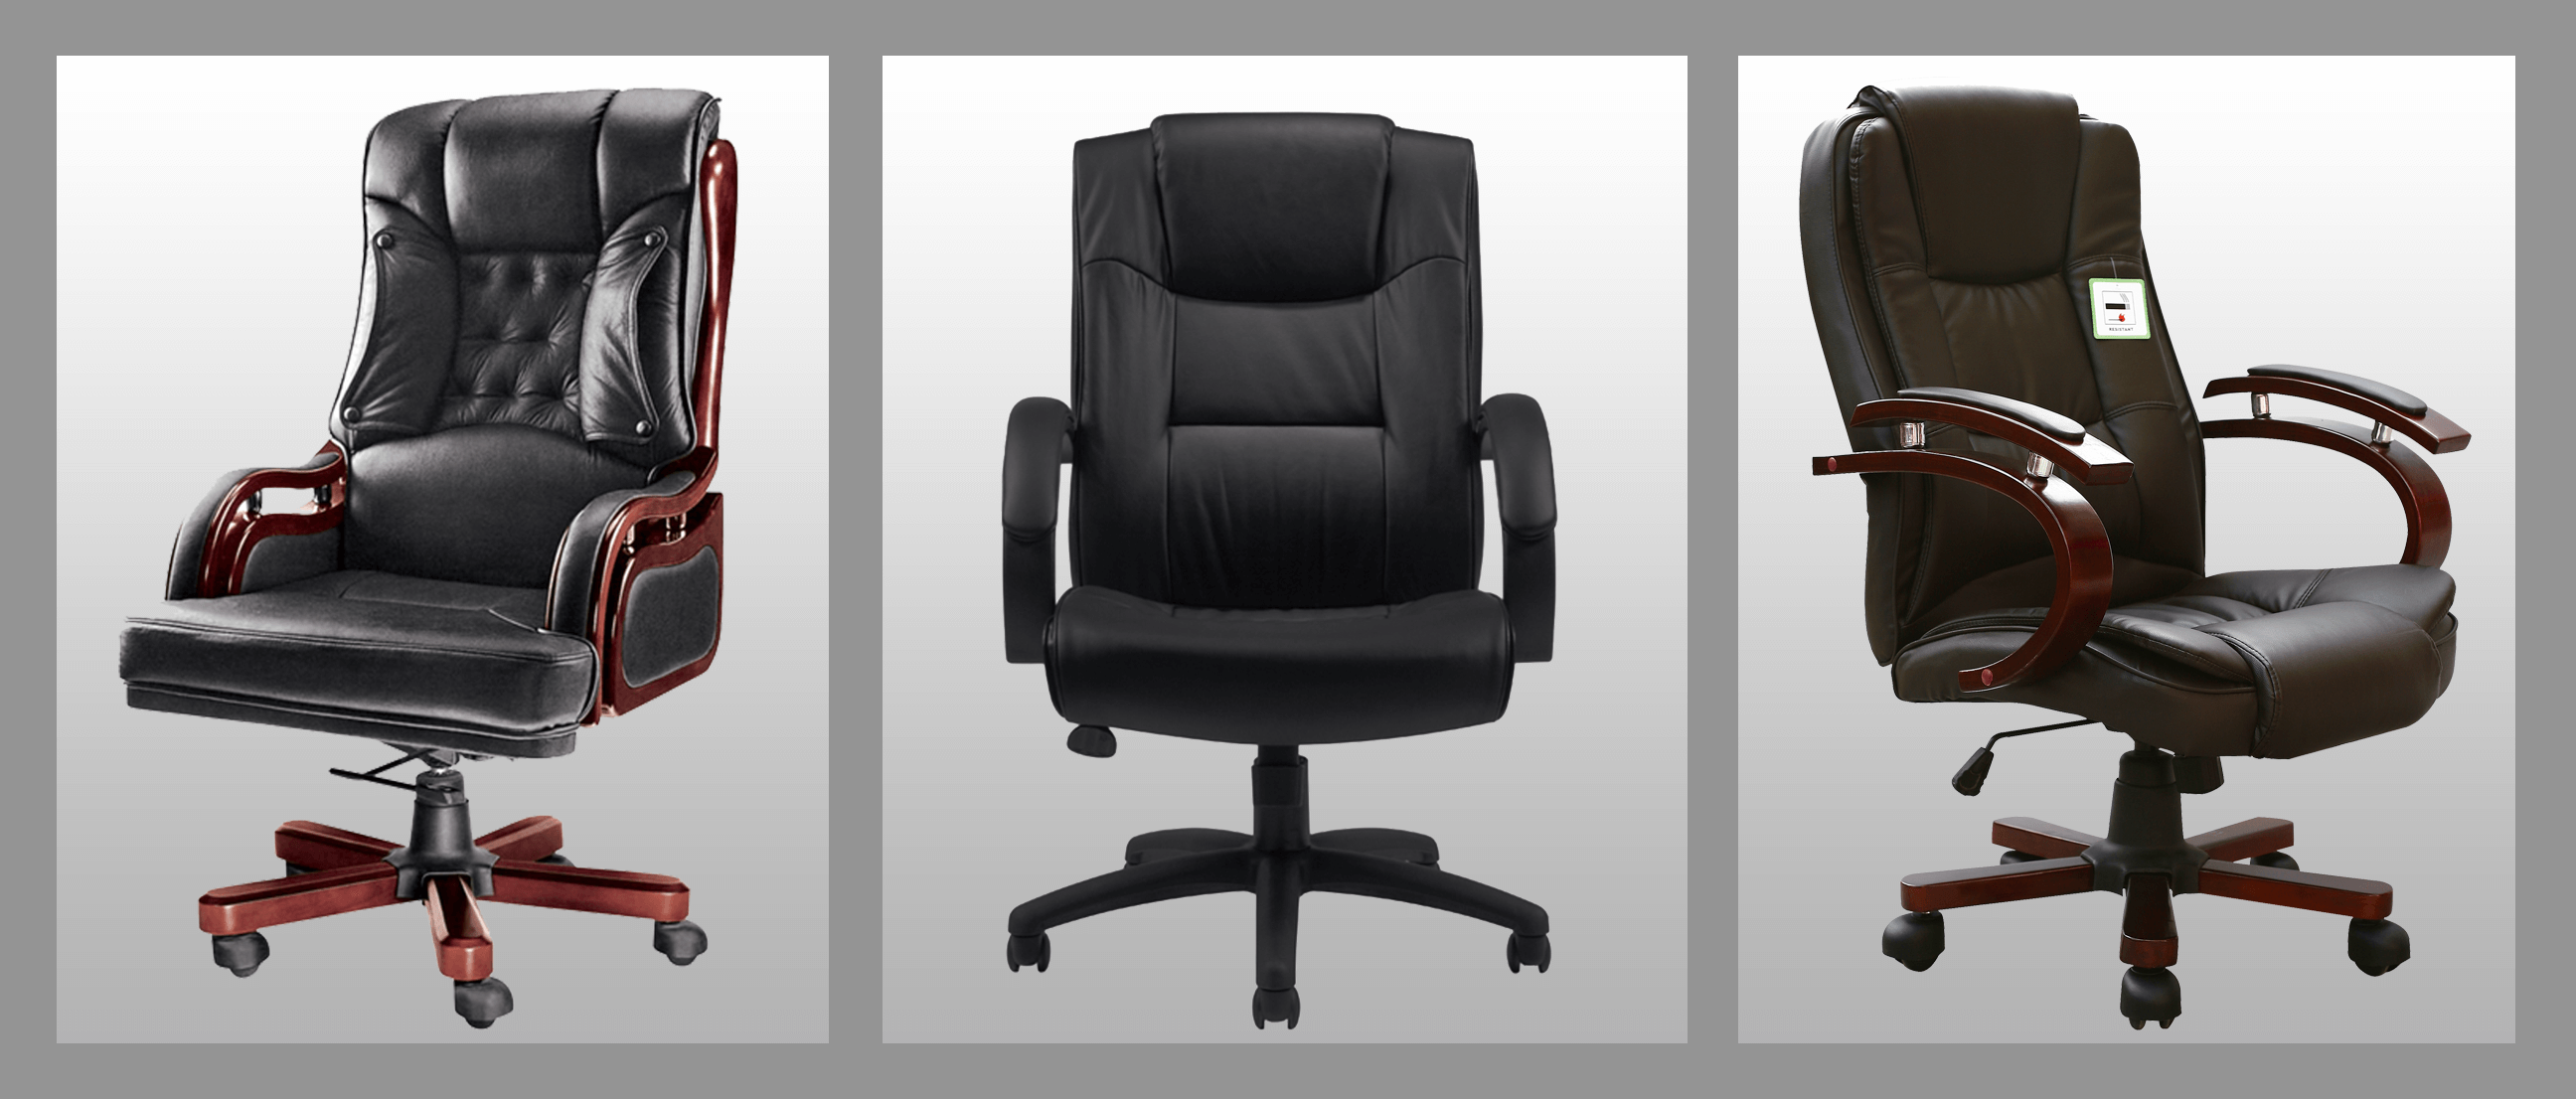 revolving chair manufacturers in mumbai with speakers gaming yashvant industries